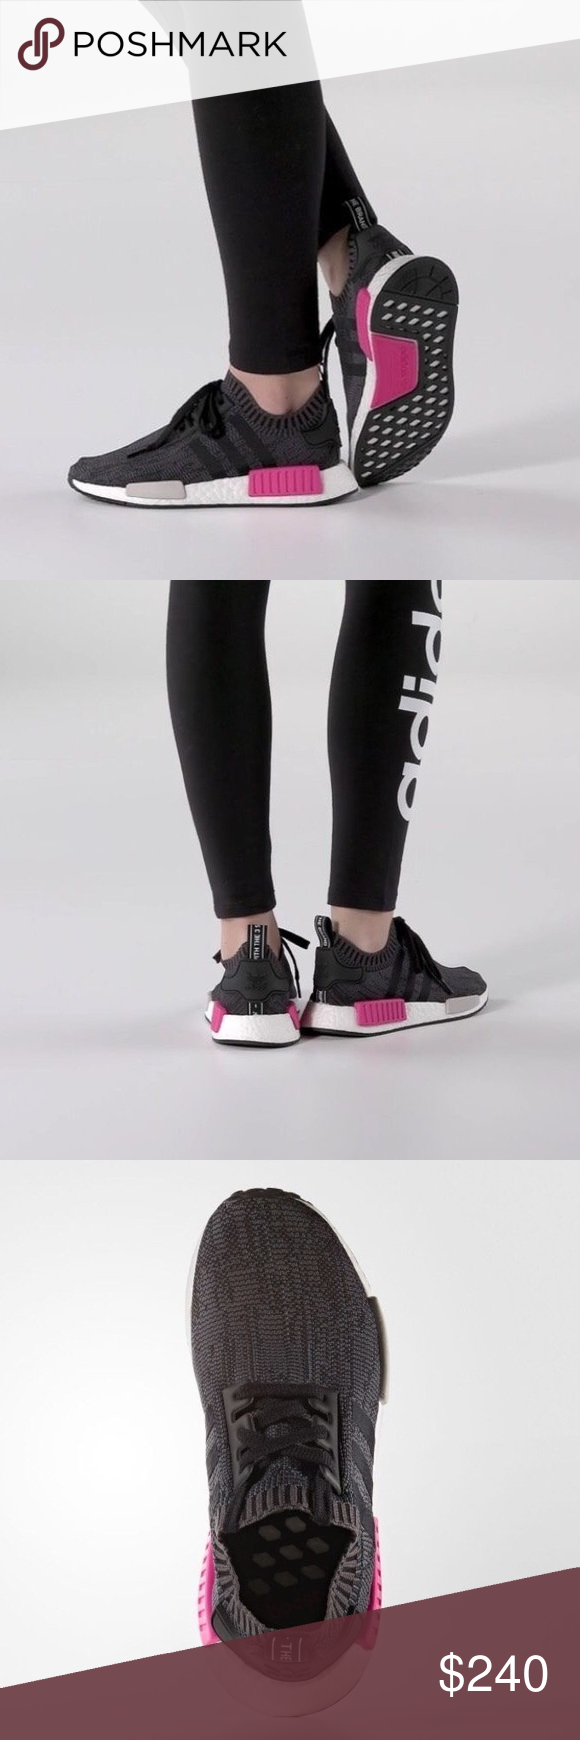 c8abad1b815dd Adidas NMD R1 PK Primeknit Black Shock Pink BB2364 NEW WITH BOX AUTHENTIC ADIDAS  NMD R1